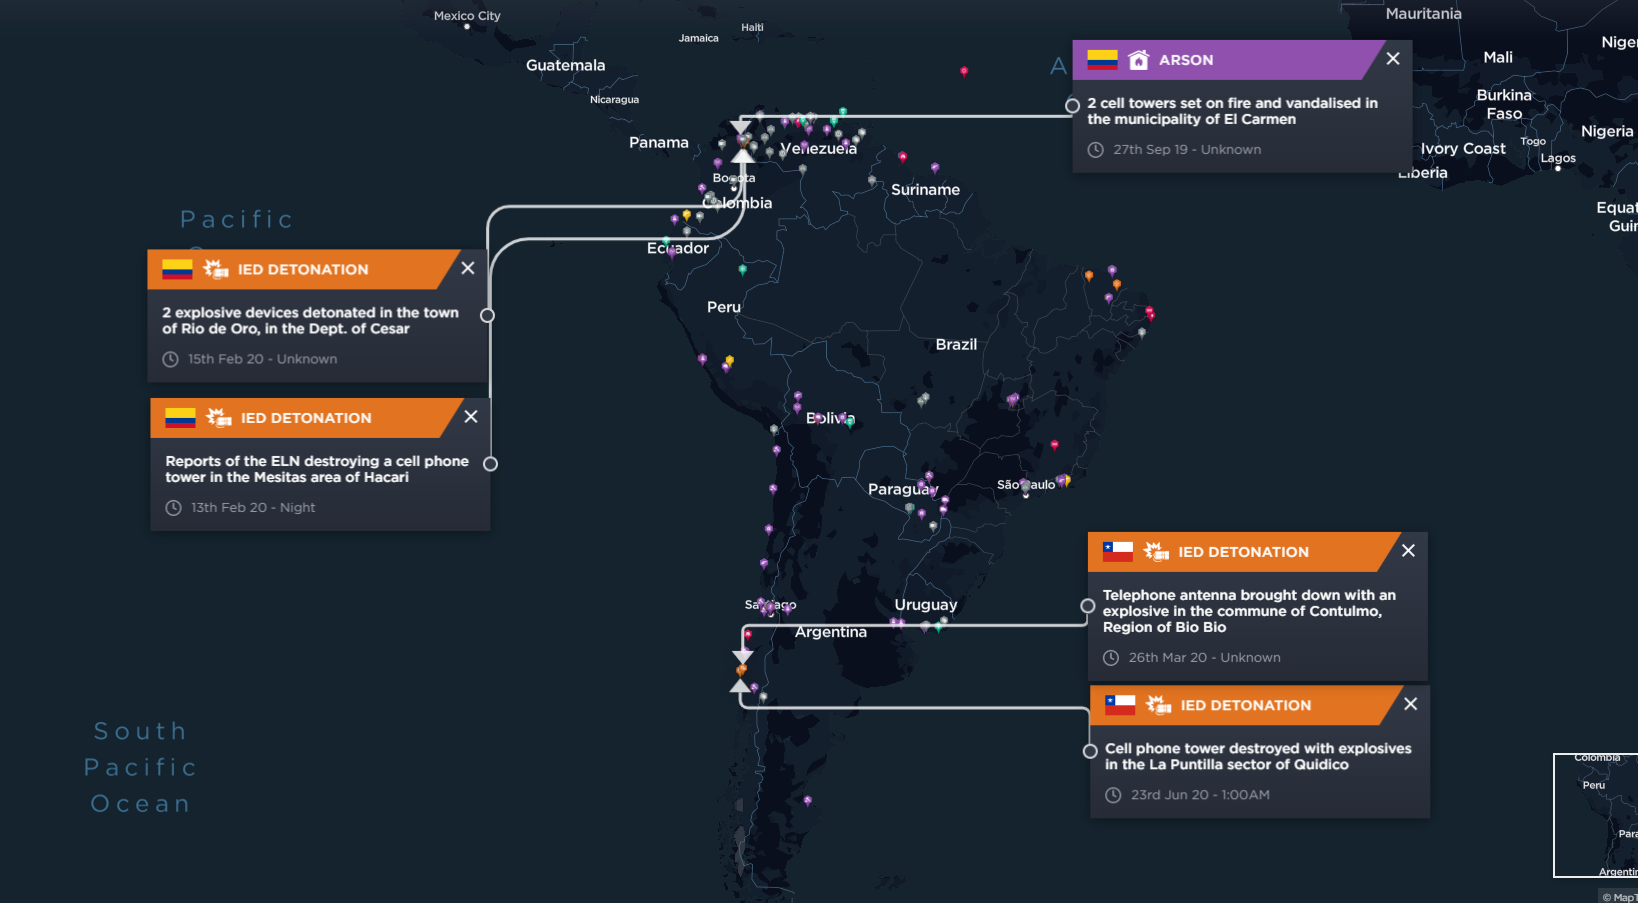 Attacks on telecommunications towers in Chile and Colombia conducted by armed groups in 2020.